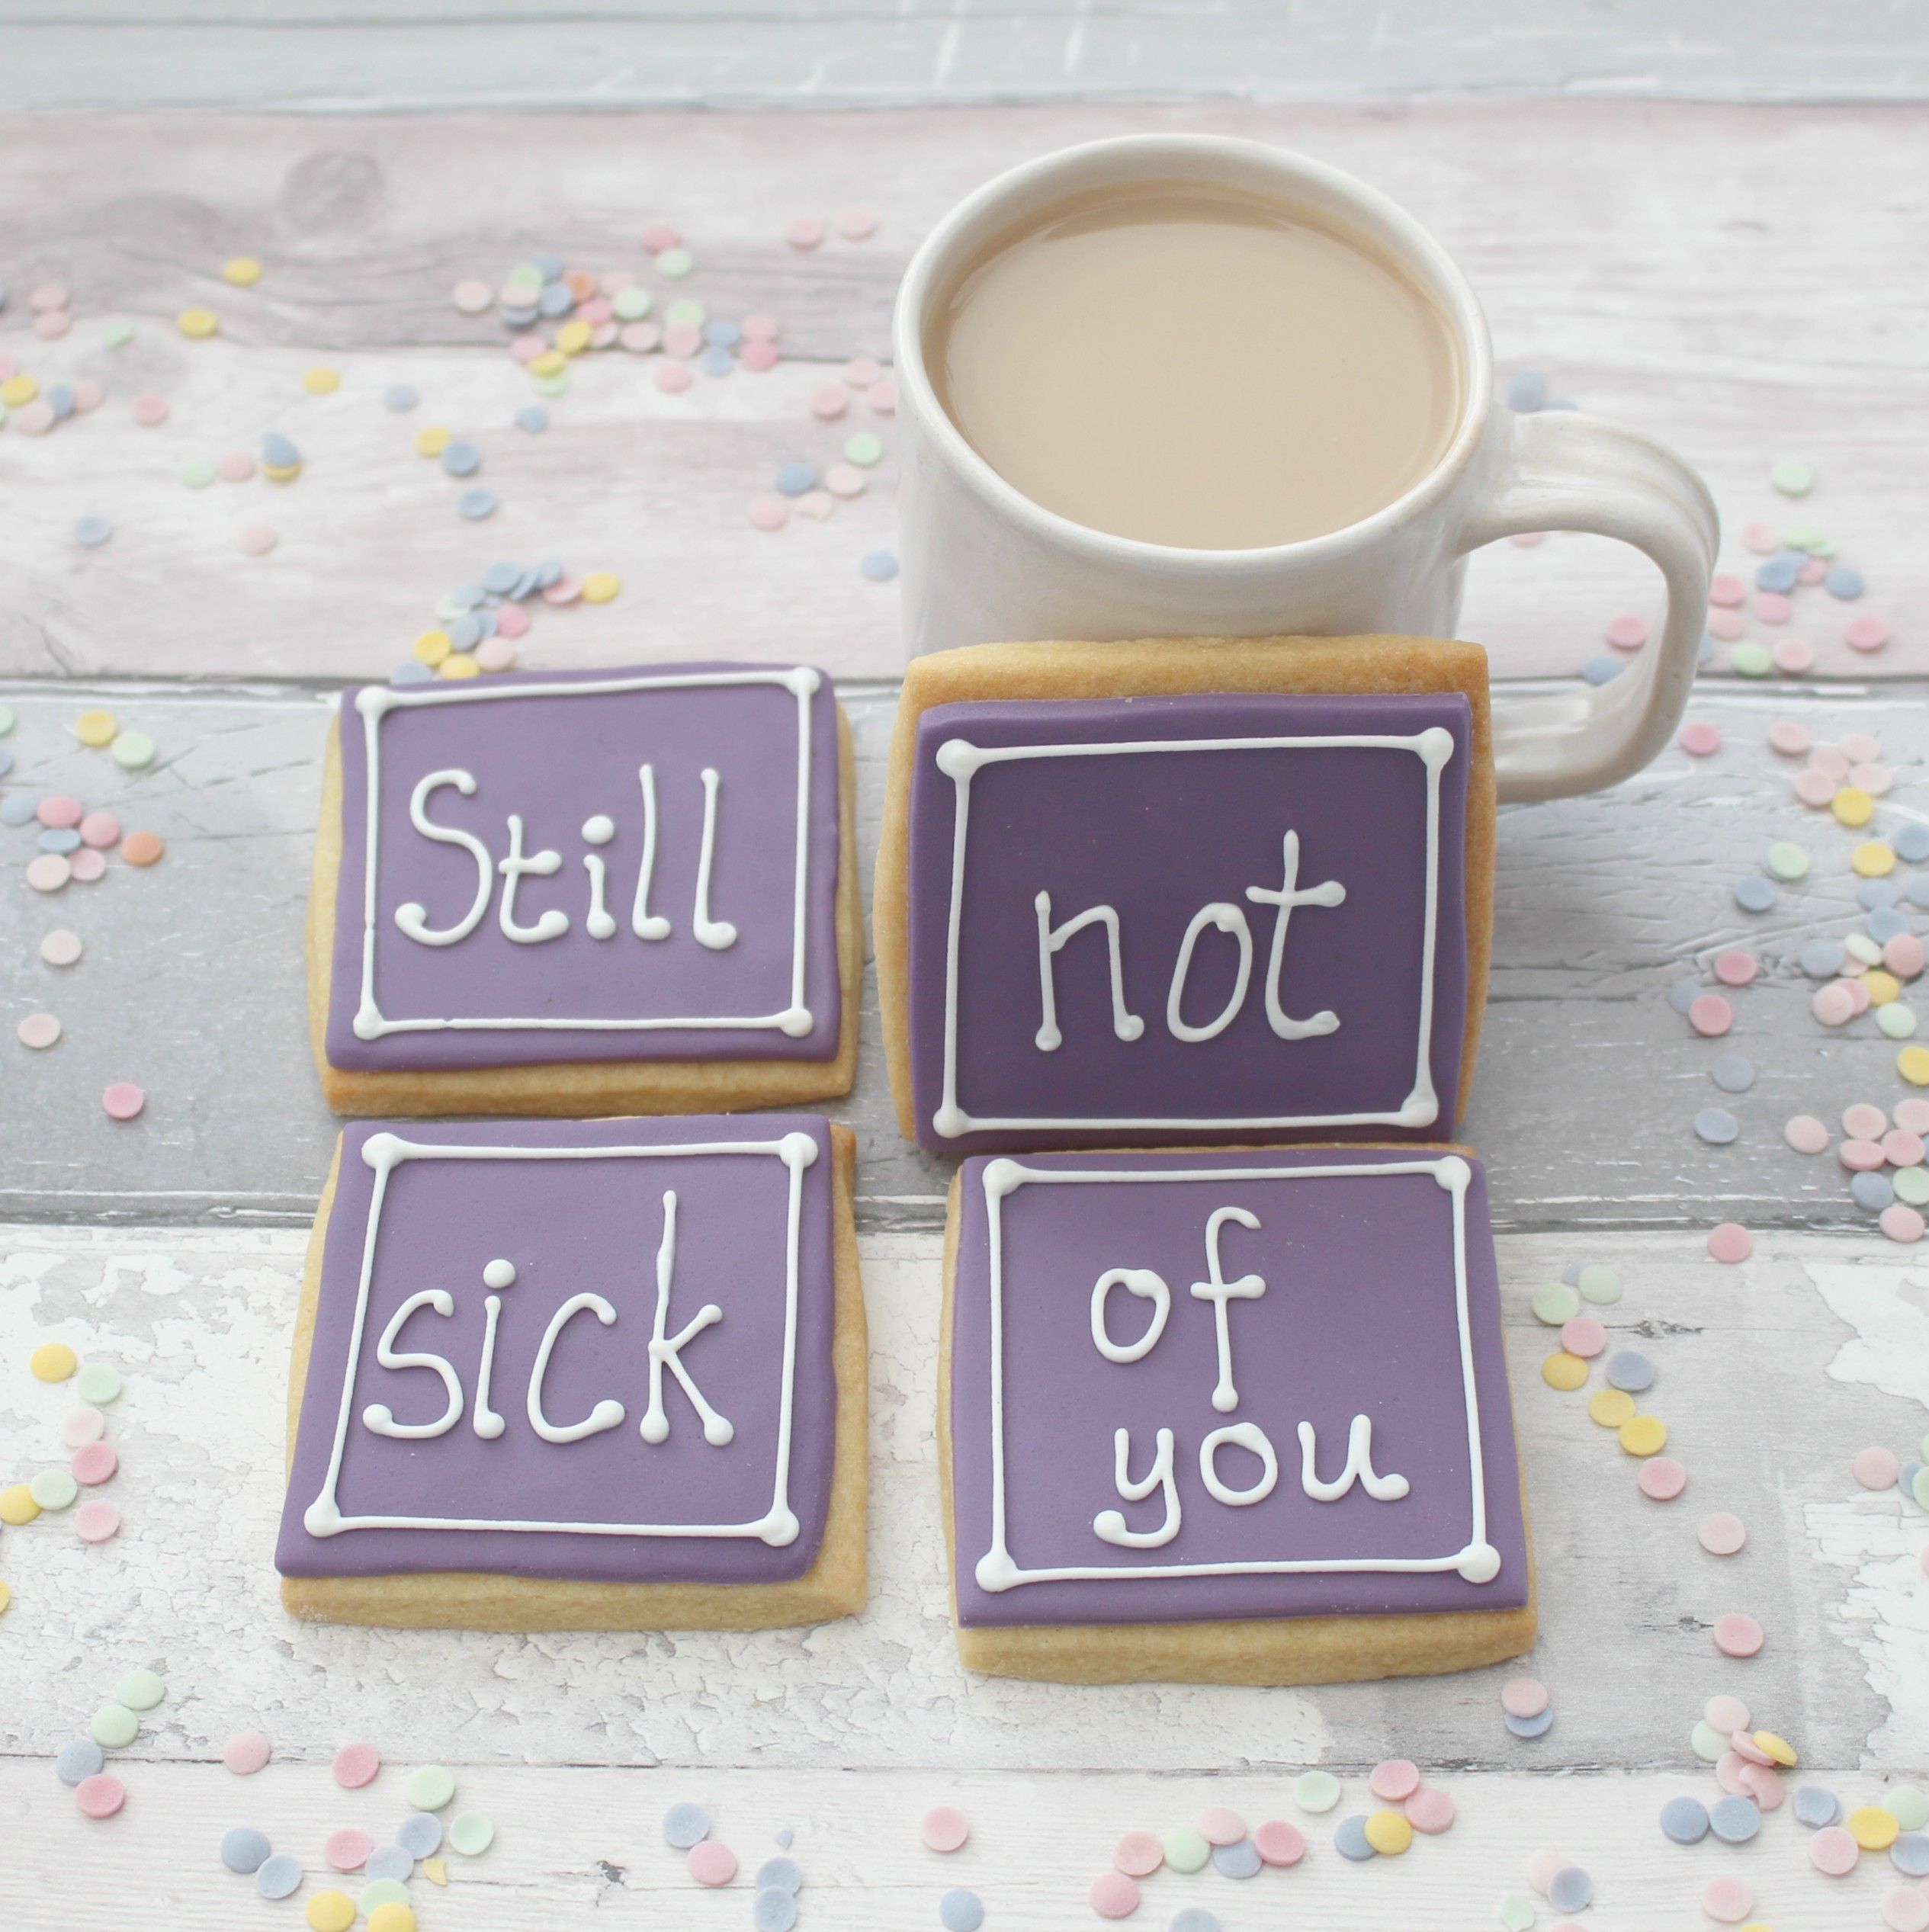 Funny anniversary gift for husband, birthday cookies for